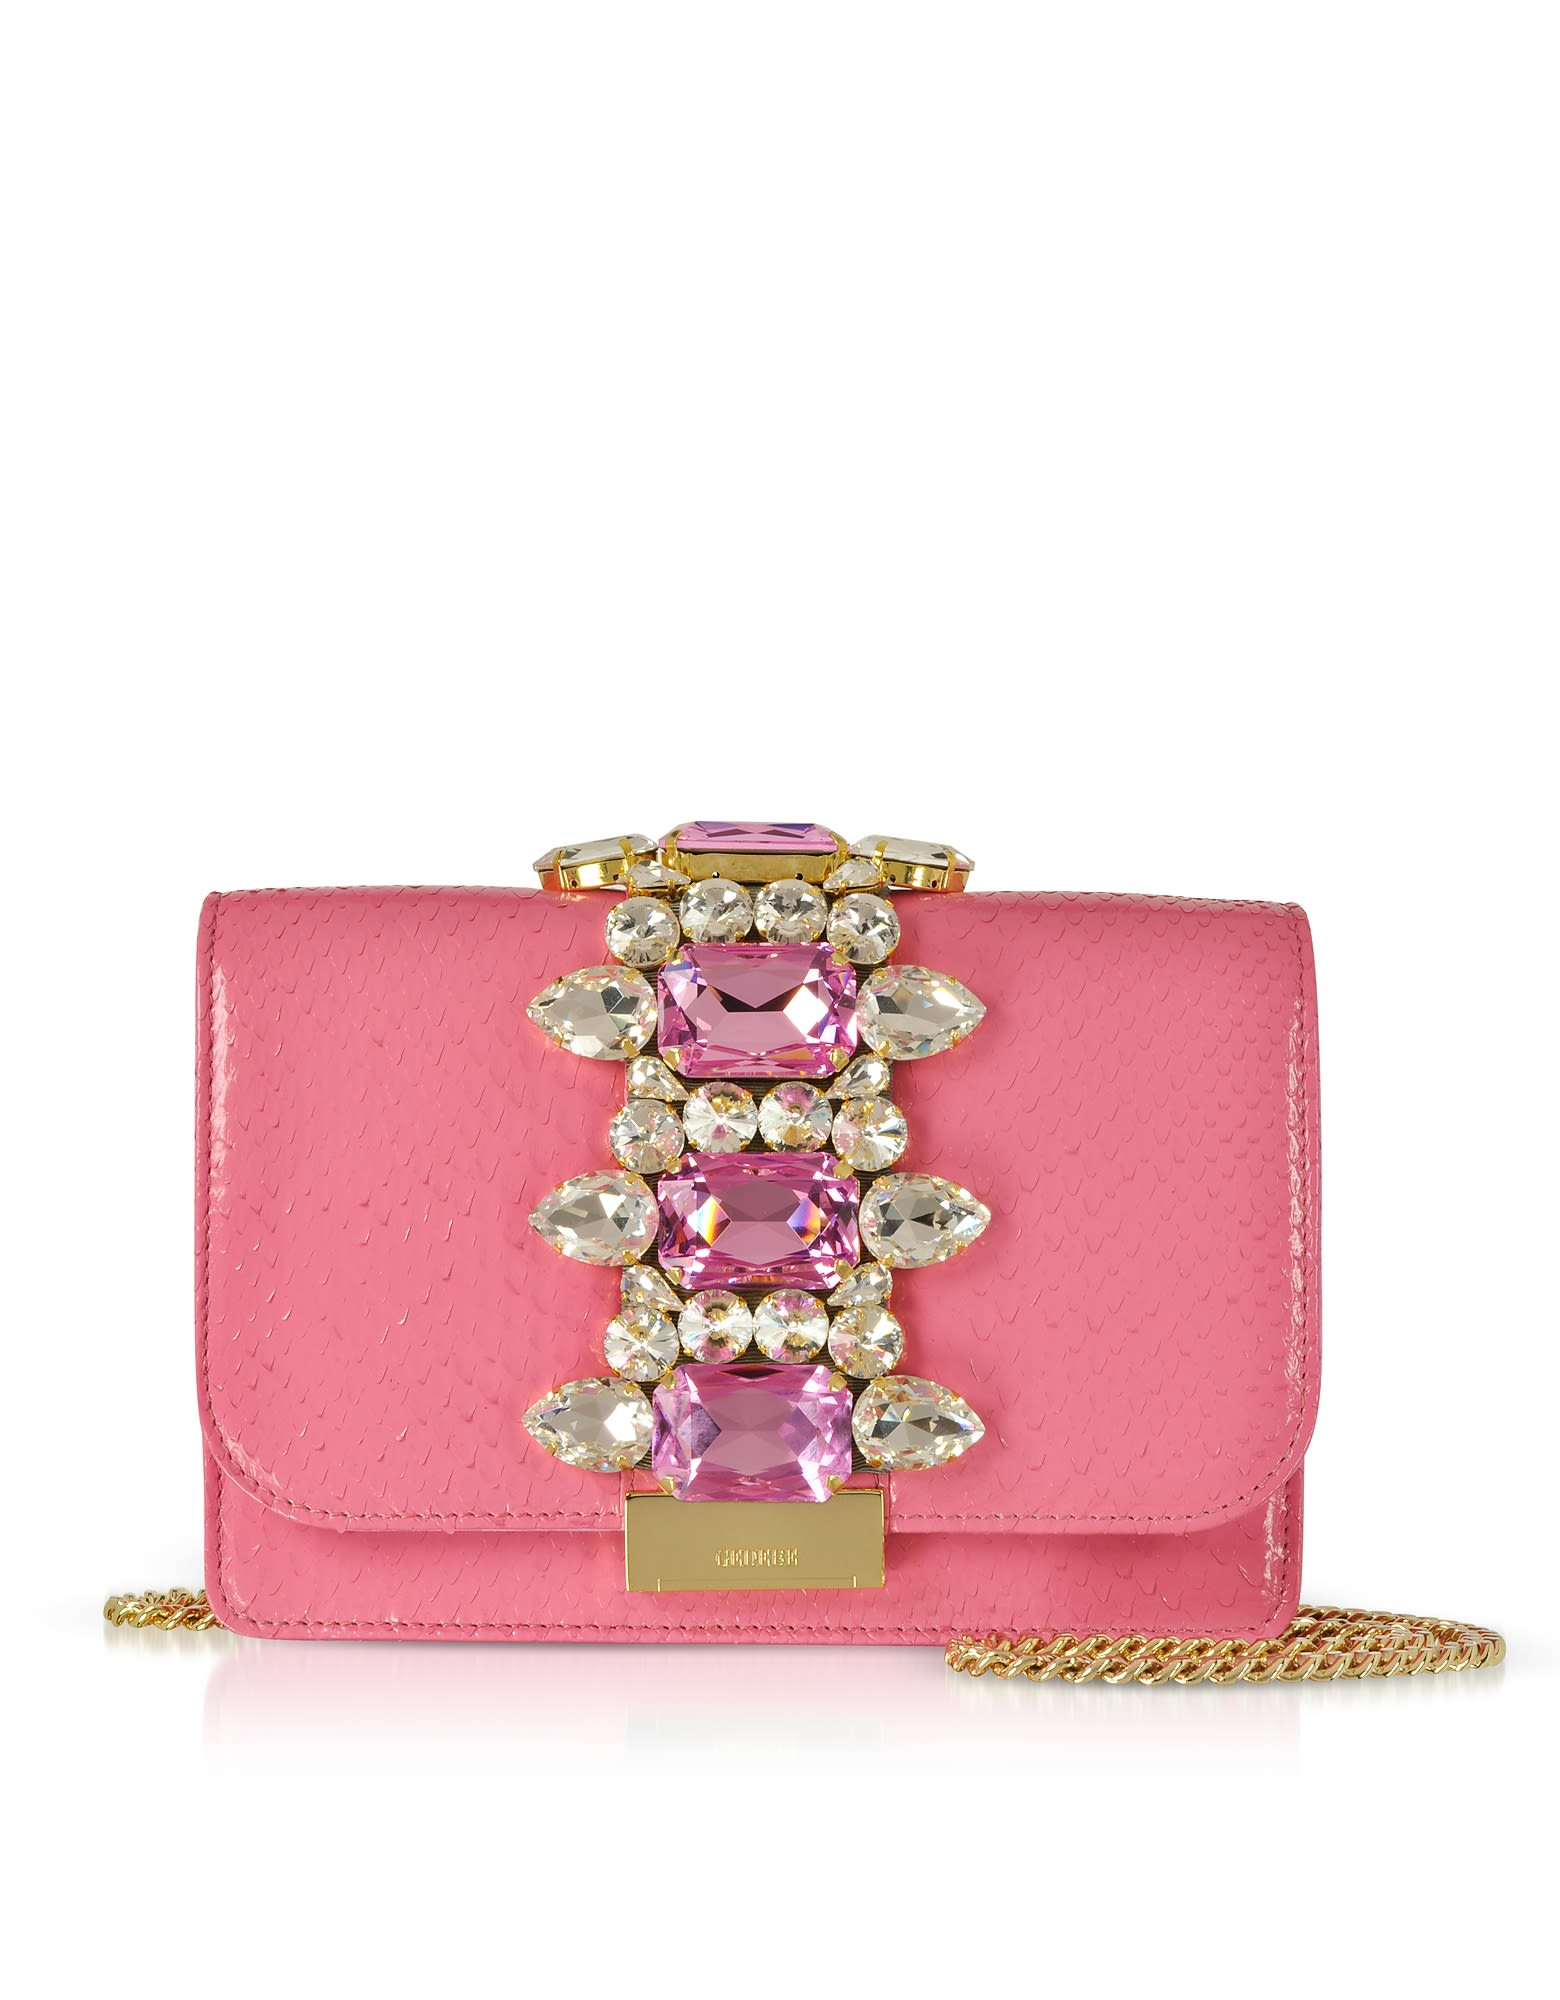 GEDEBE CLIKY BARBIE PYTHON CLUTCH W-CRYSTALS AND CHAIN STRAP